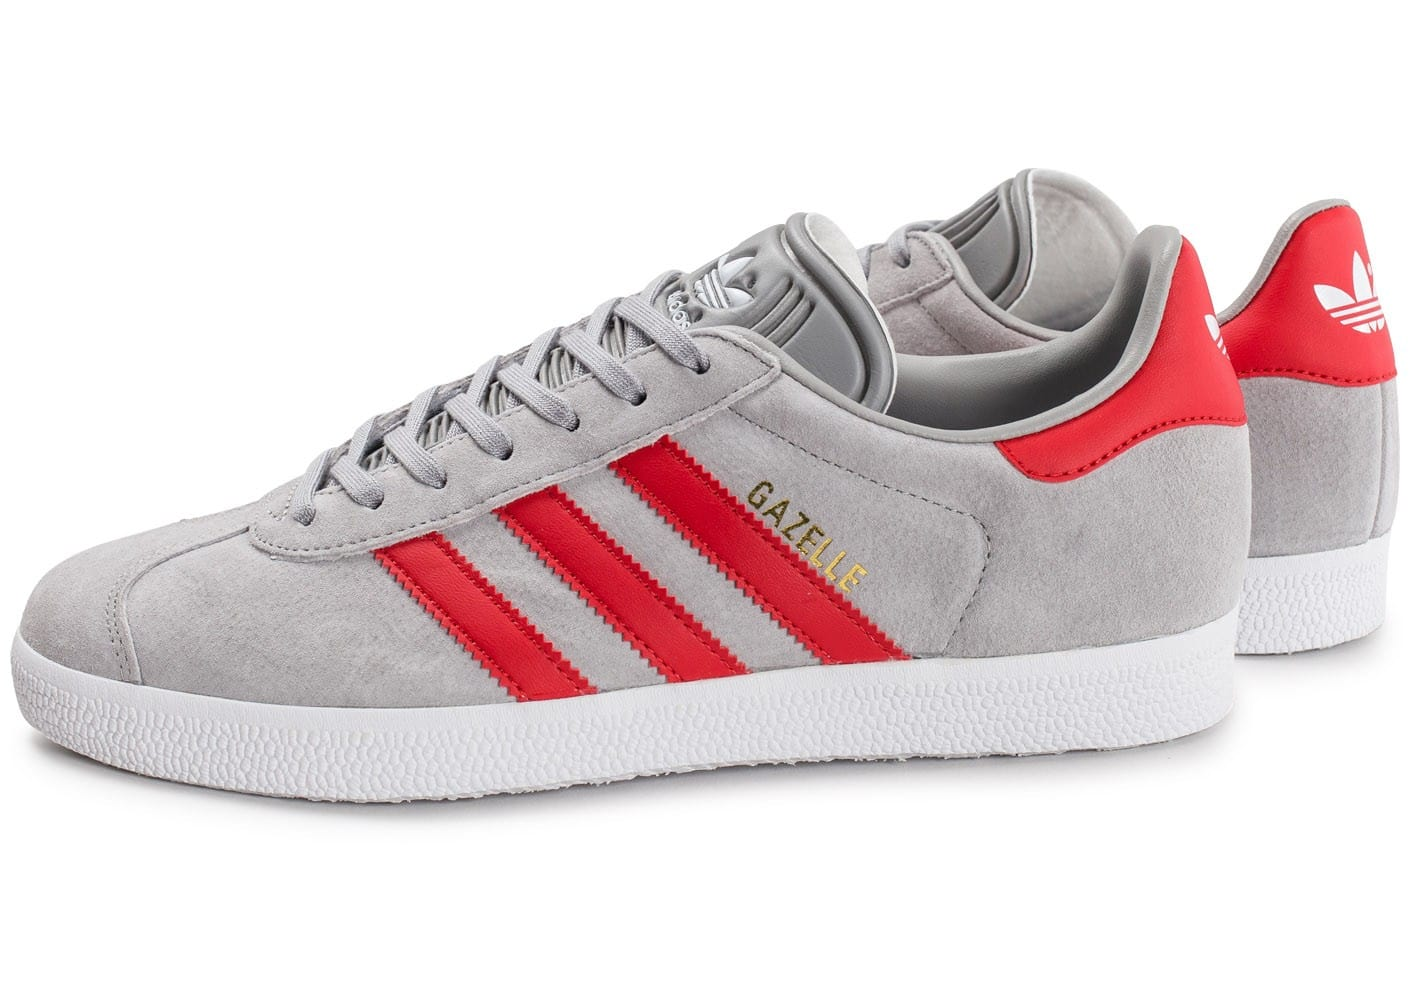 adidas gazelle grise et rouge chaussures homme chausport. Black Bedroom Furniture Sets. Home Design Ideas